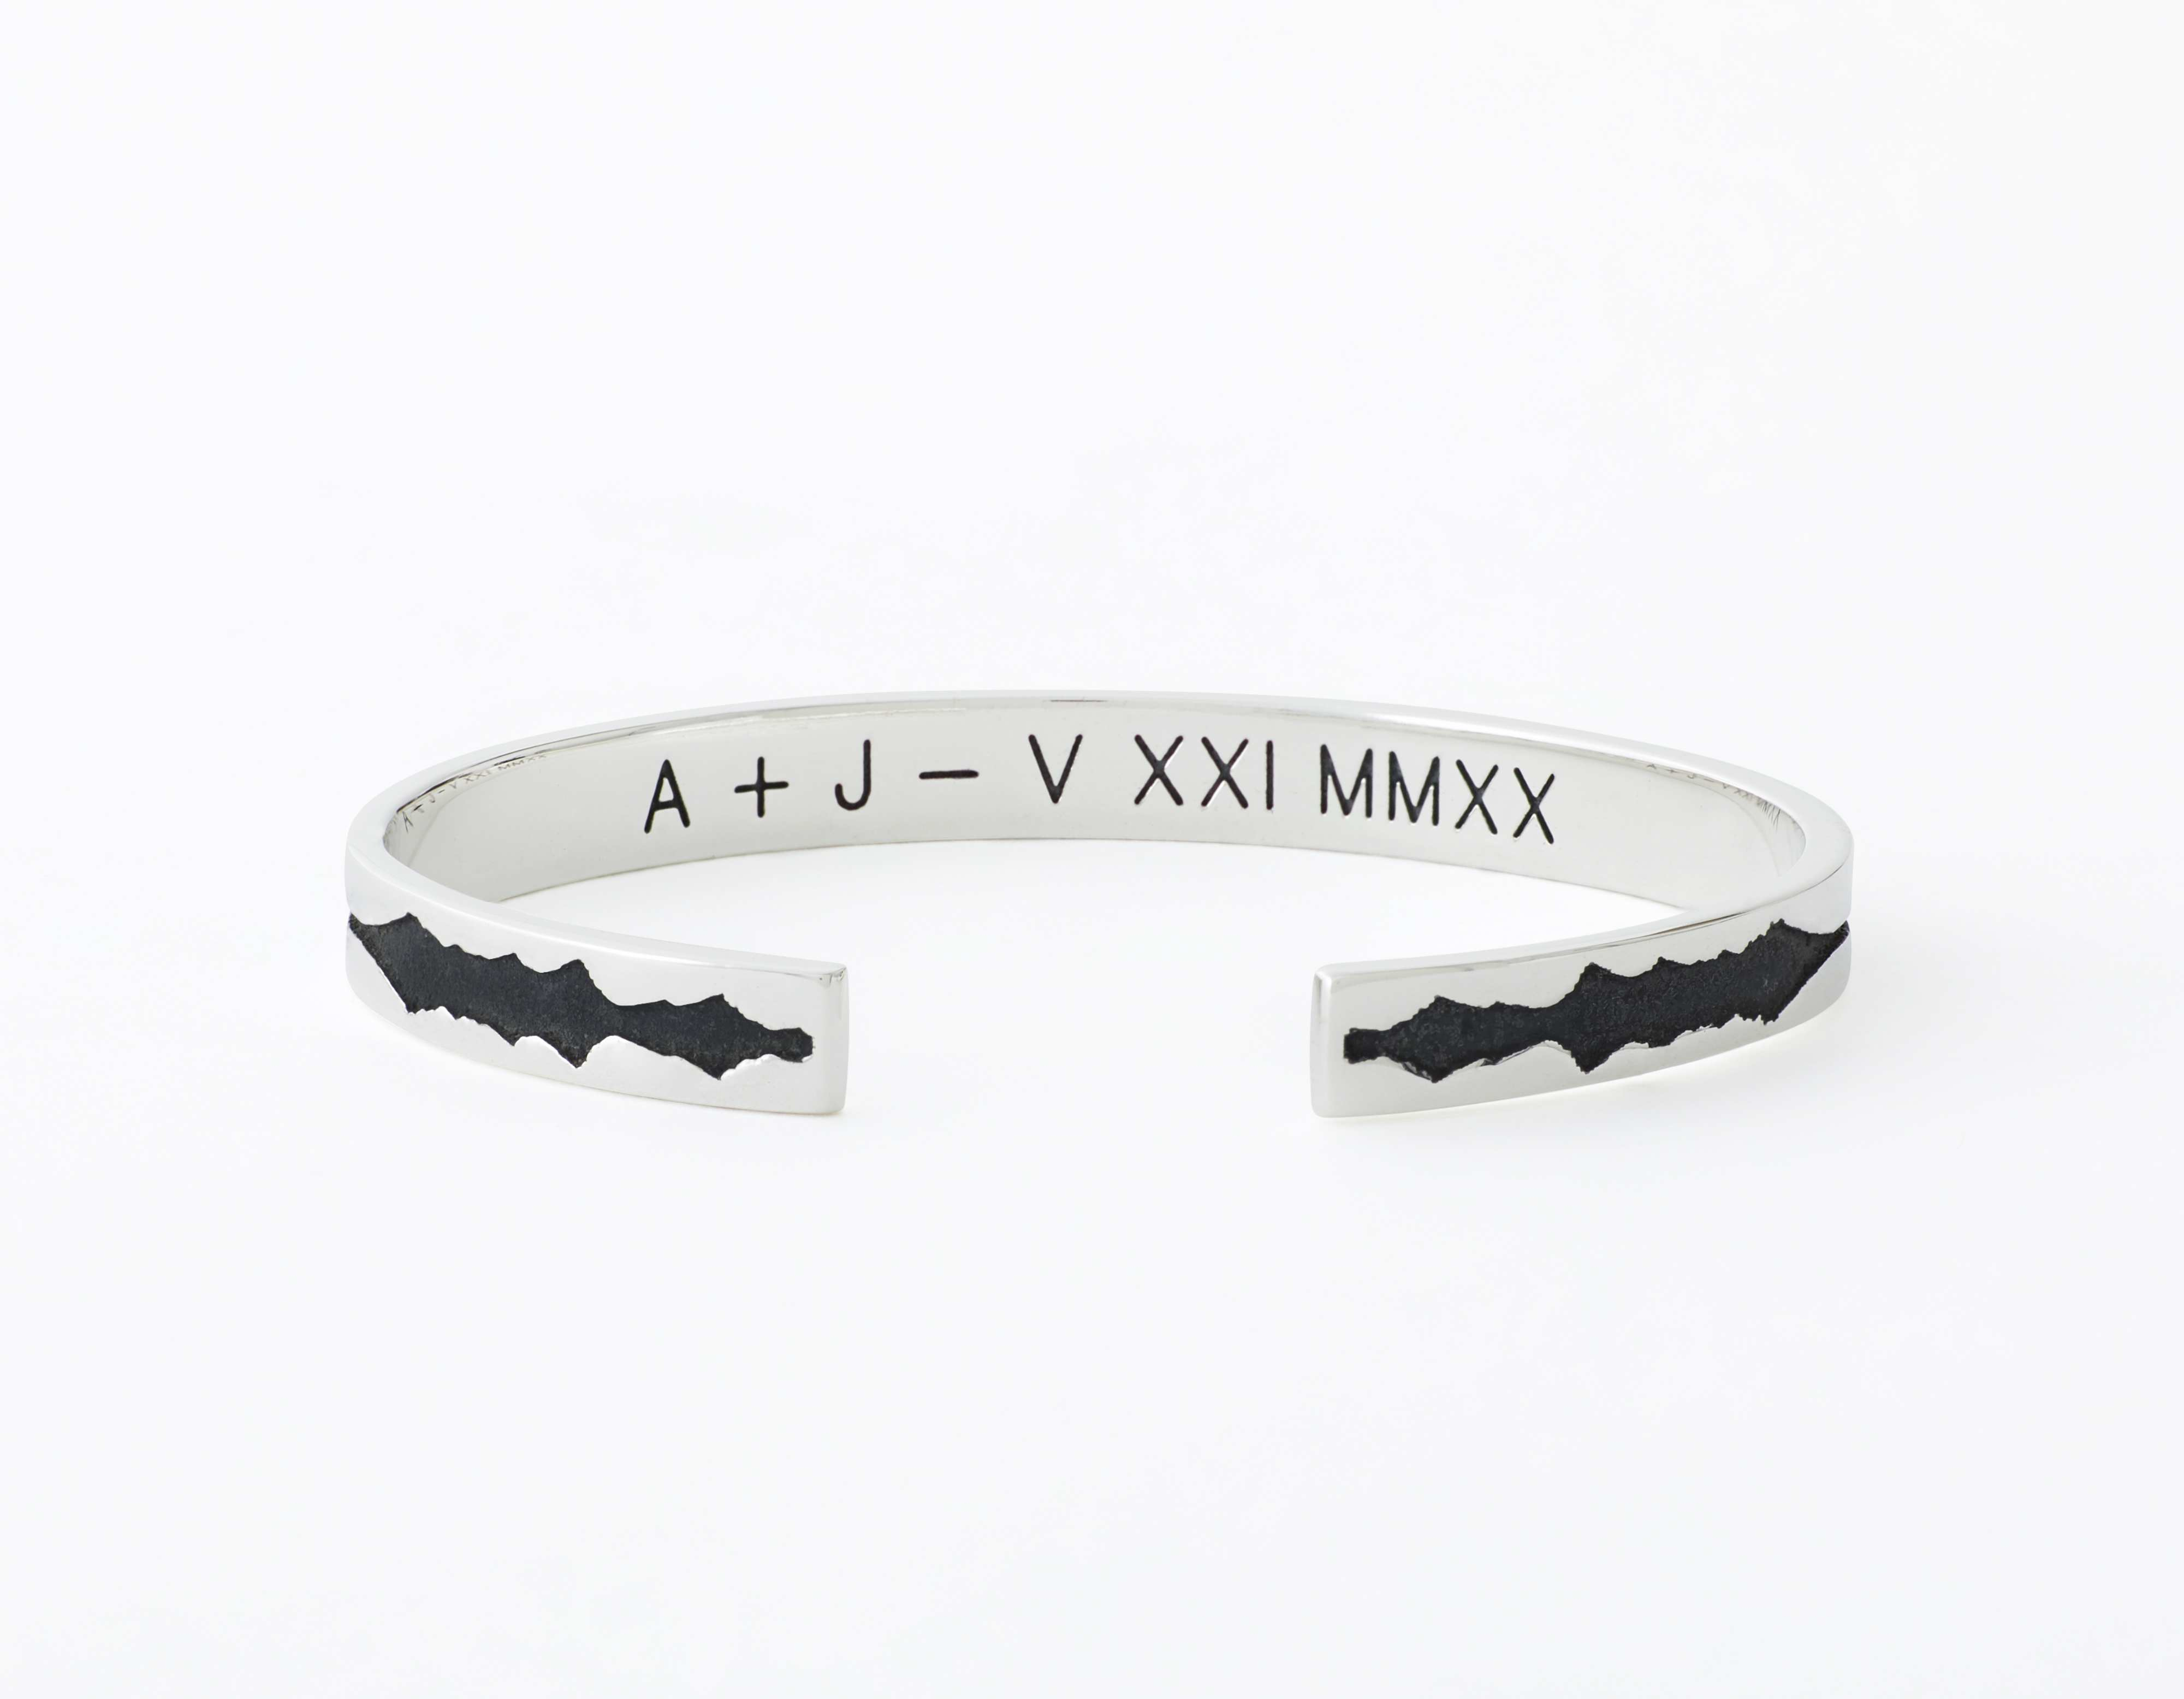 The Outer Wave Bracelet placed horizontal-inner in Antiqued Sterling Silver